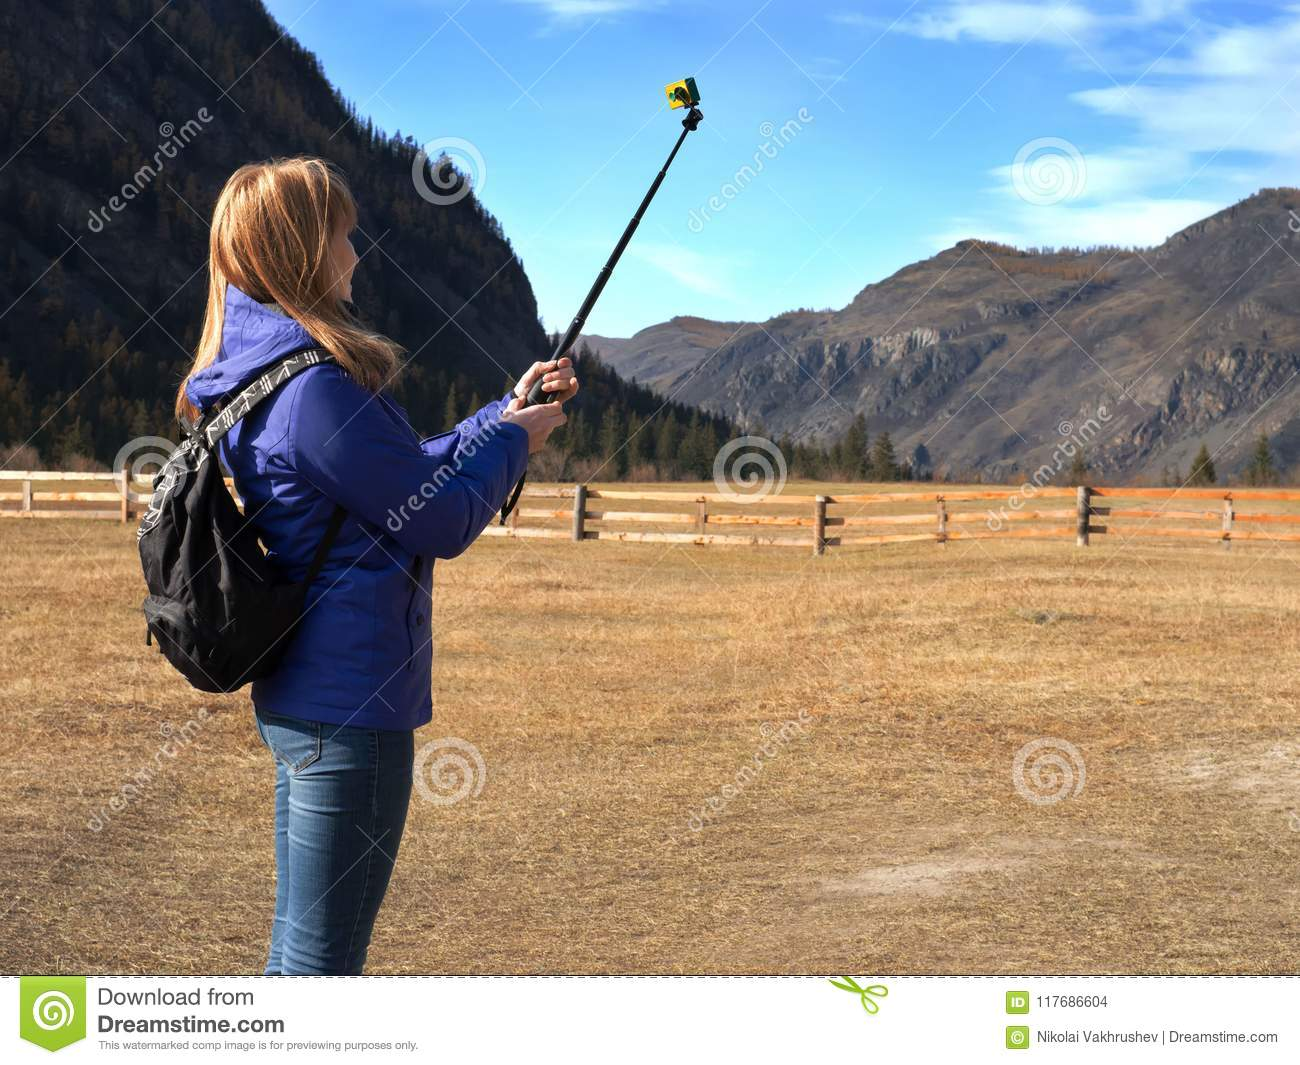 Young blonde woman backpacker taking photo with action camera on mountain peak.